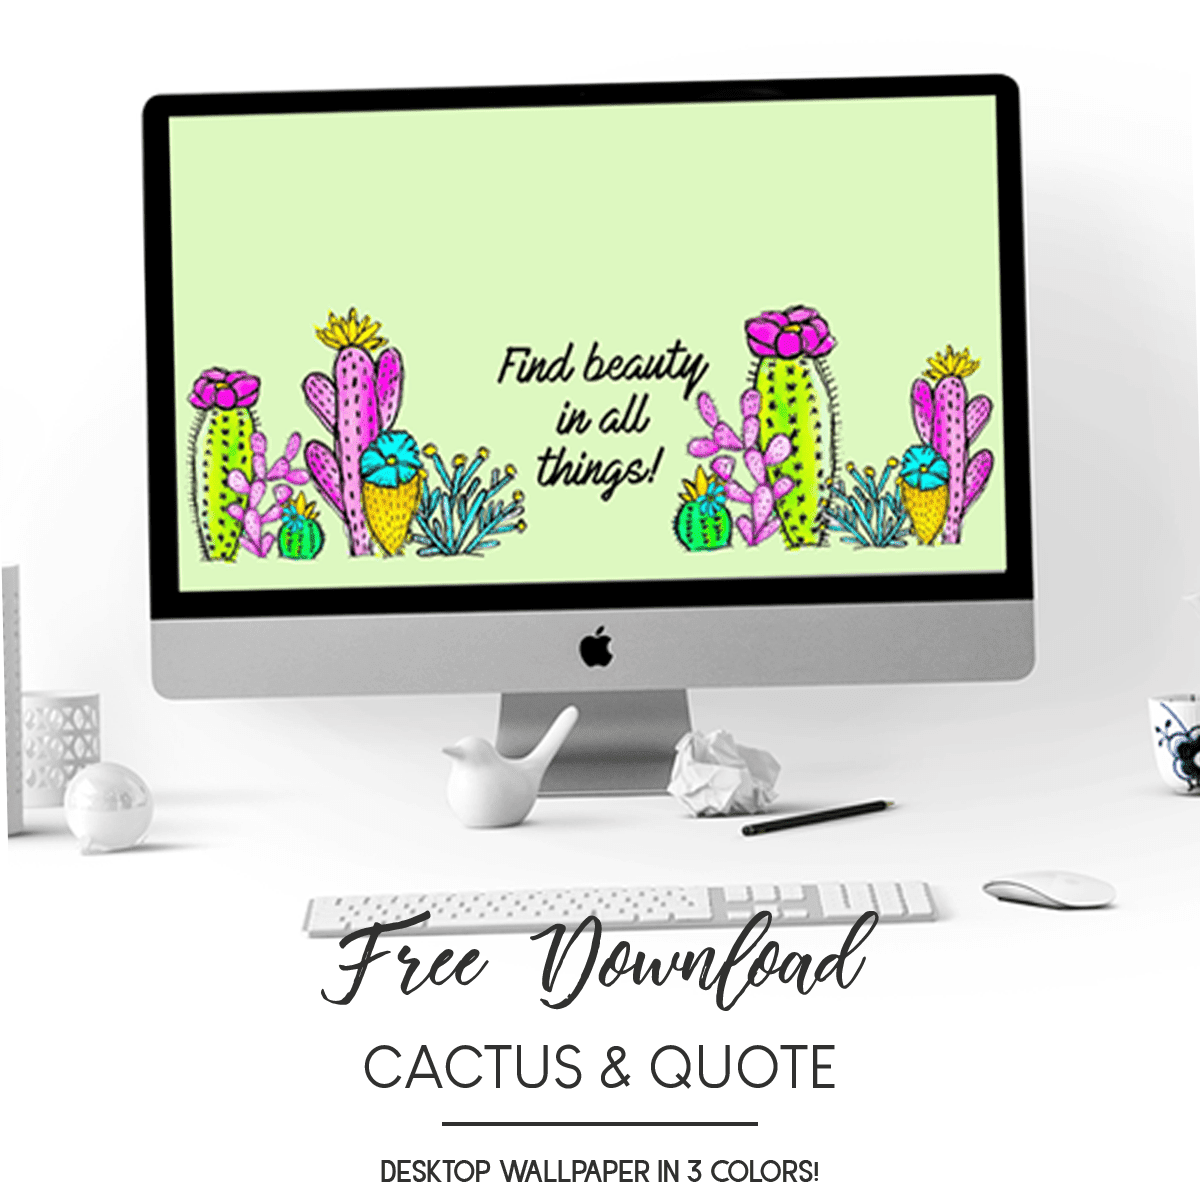 mock up image of cactus and quotes desktop wallpaper on a computer